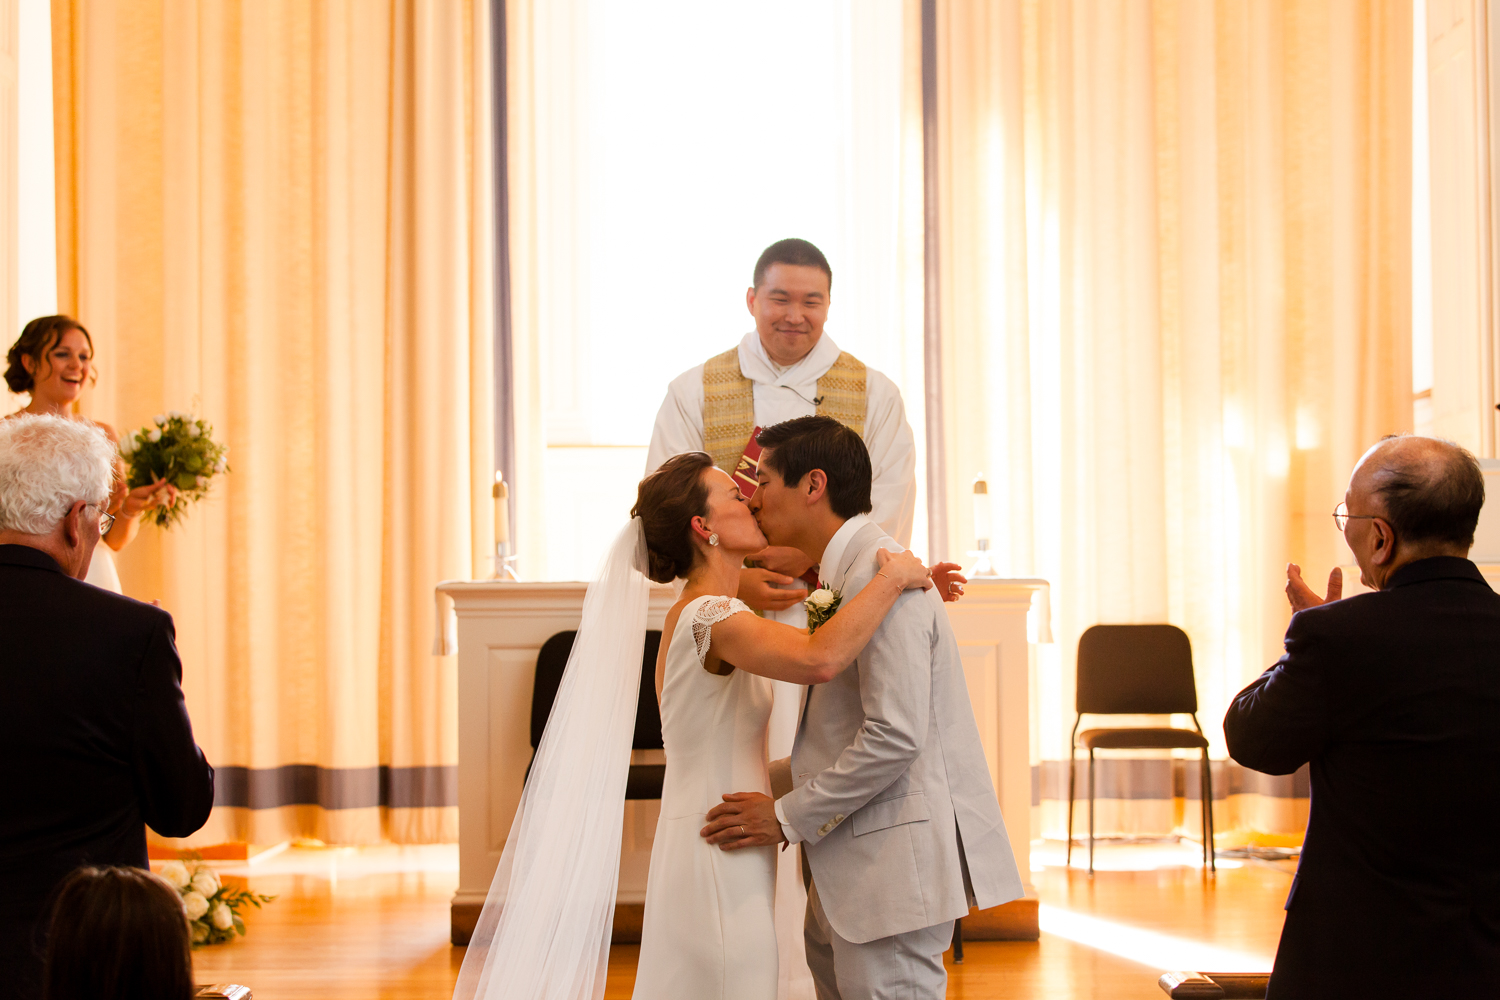 Bride and groom share their first kiss.